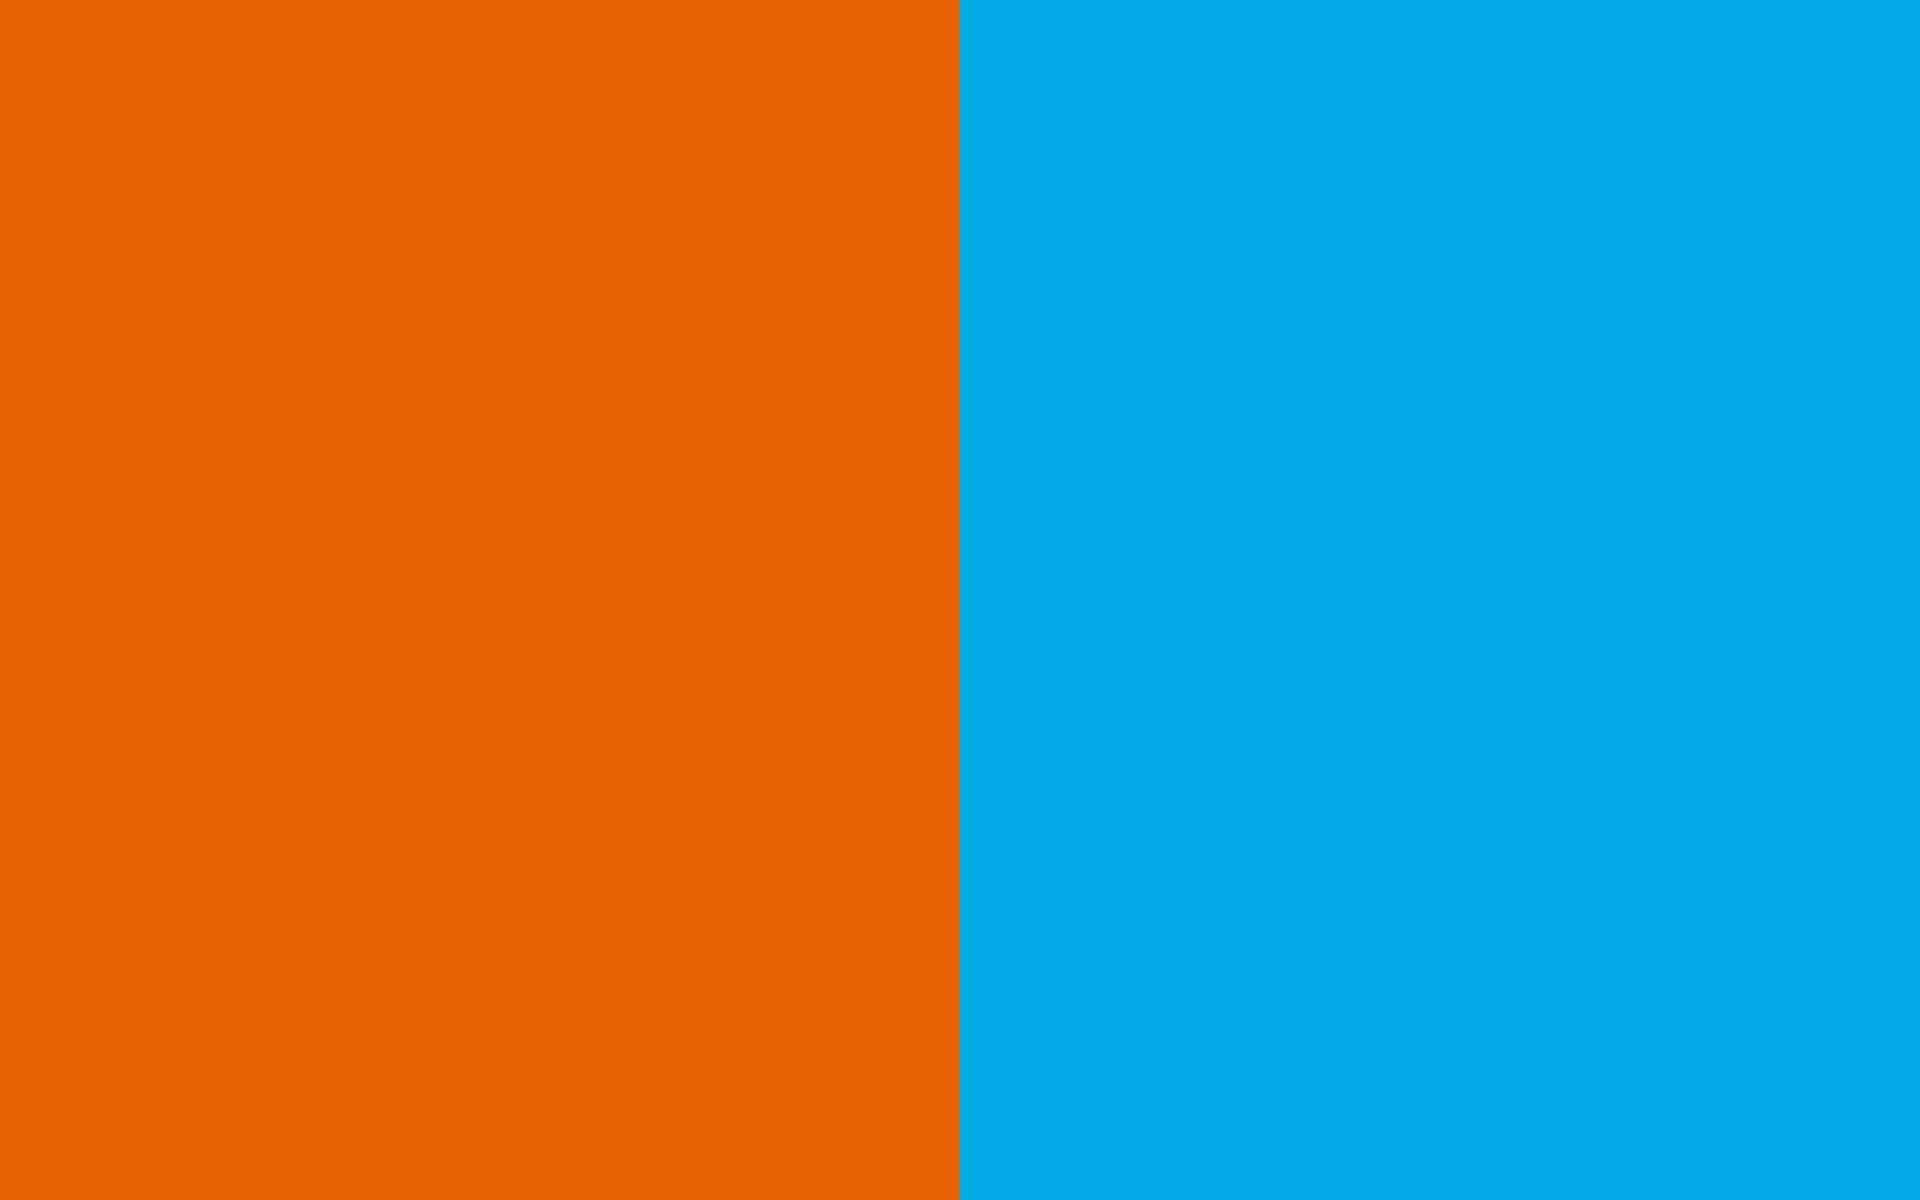 1920x1200 Spanish Orange and Spanish Sky Blue Two Color Background 1920x1200